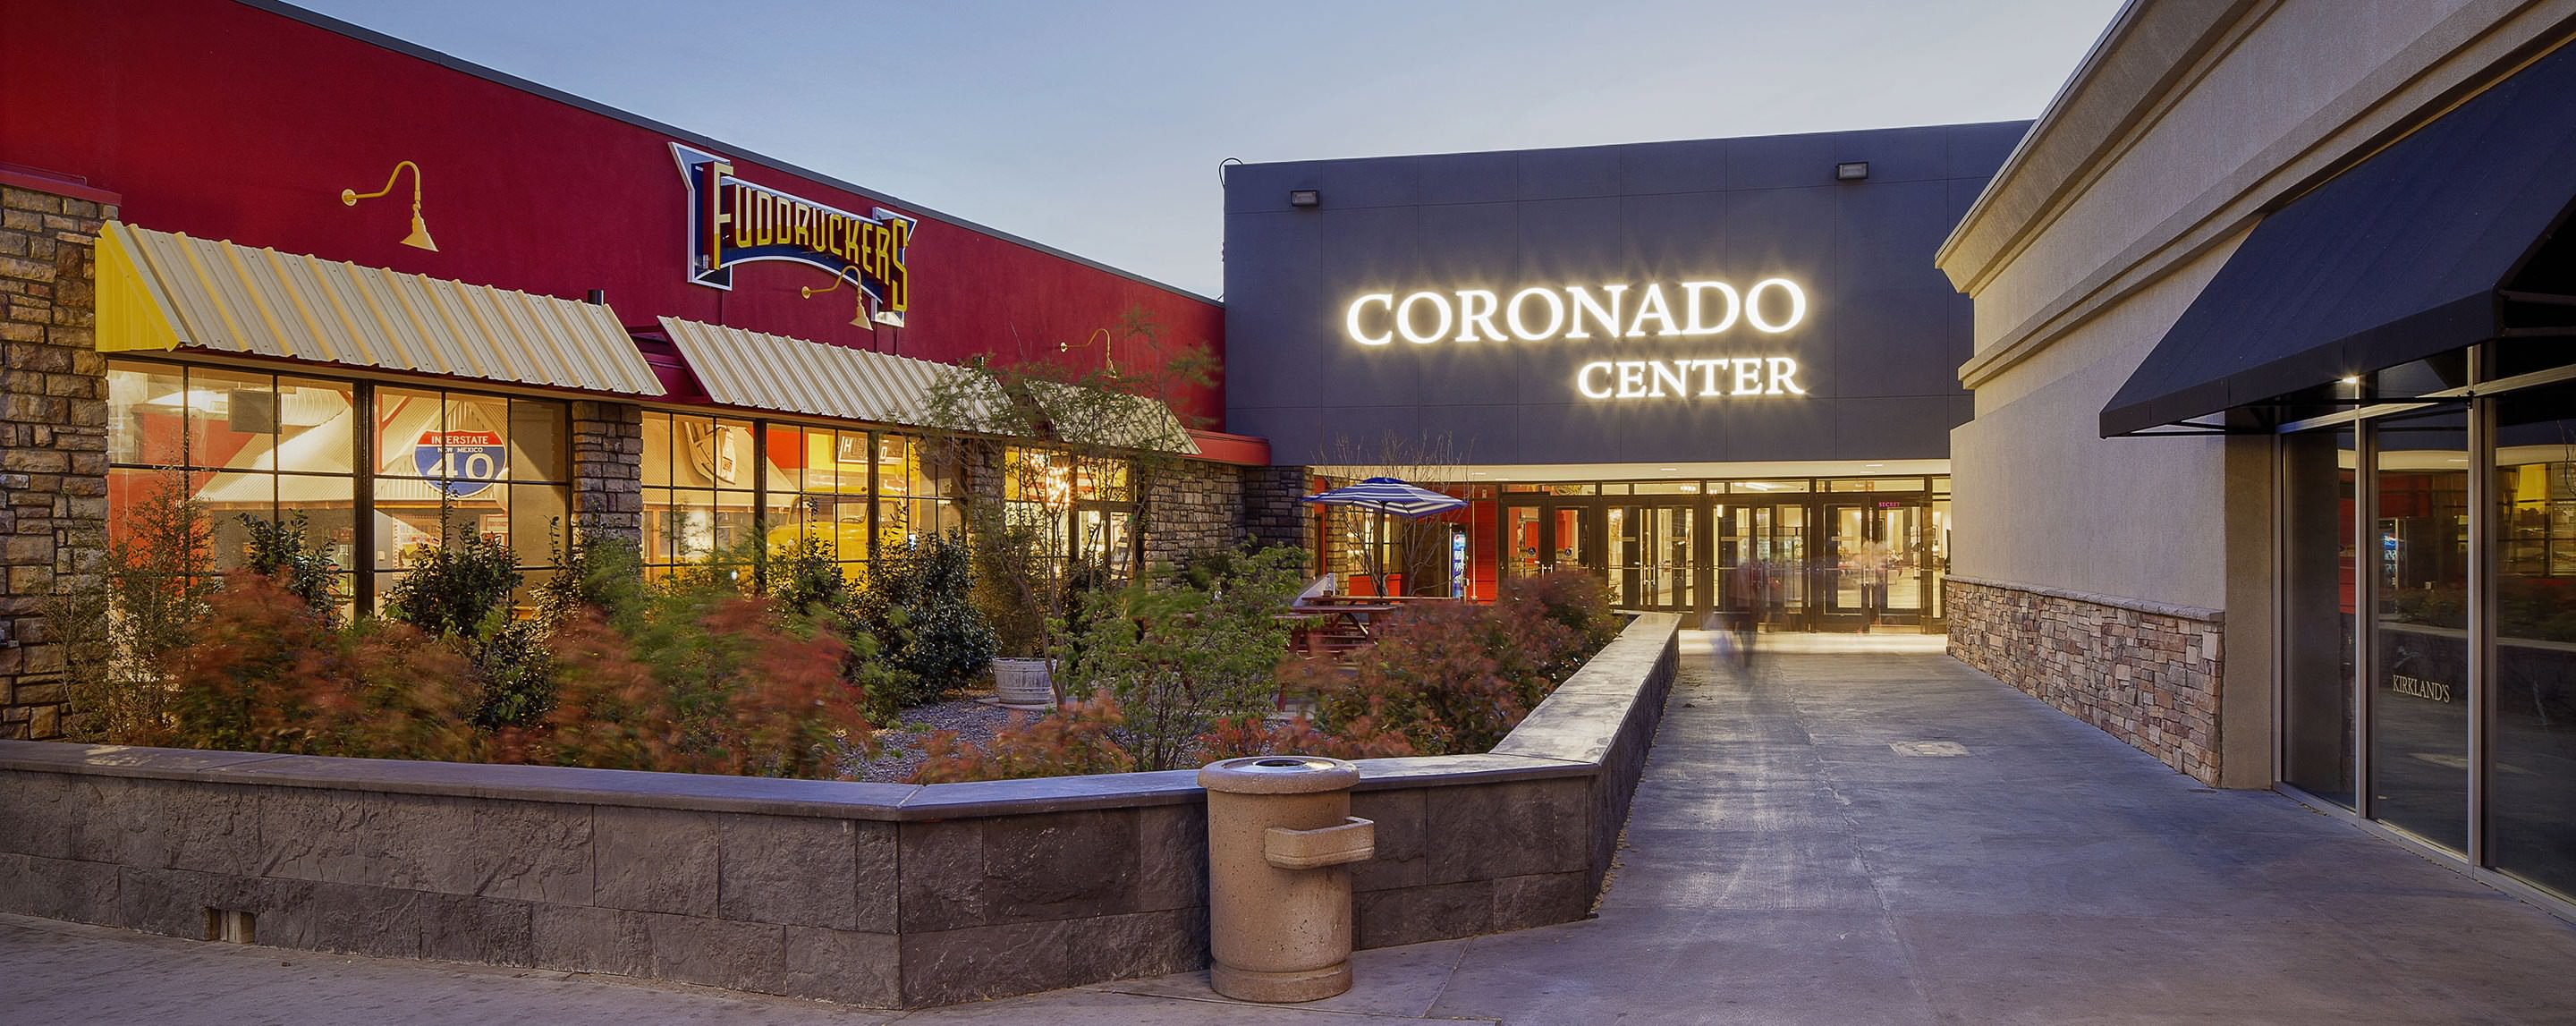 During the day, the Coronado Center entrance welcomes shoppers with plants, a seating area, and Fuddruckers.